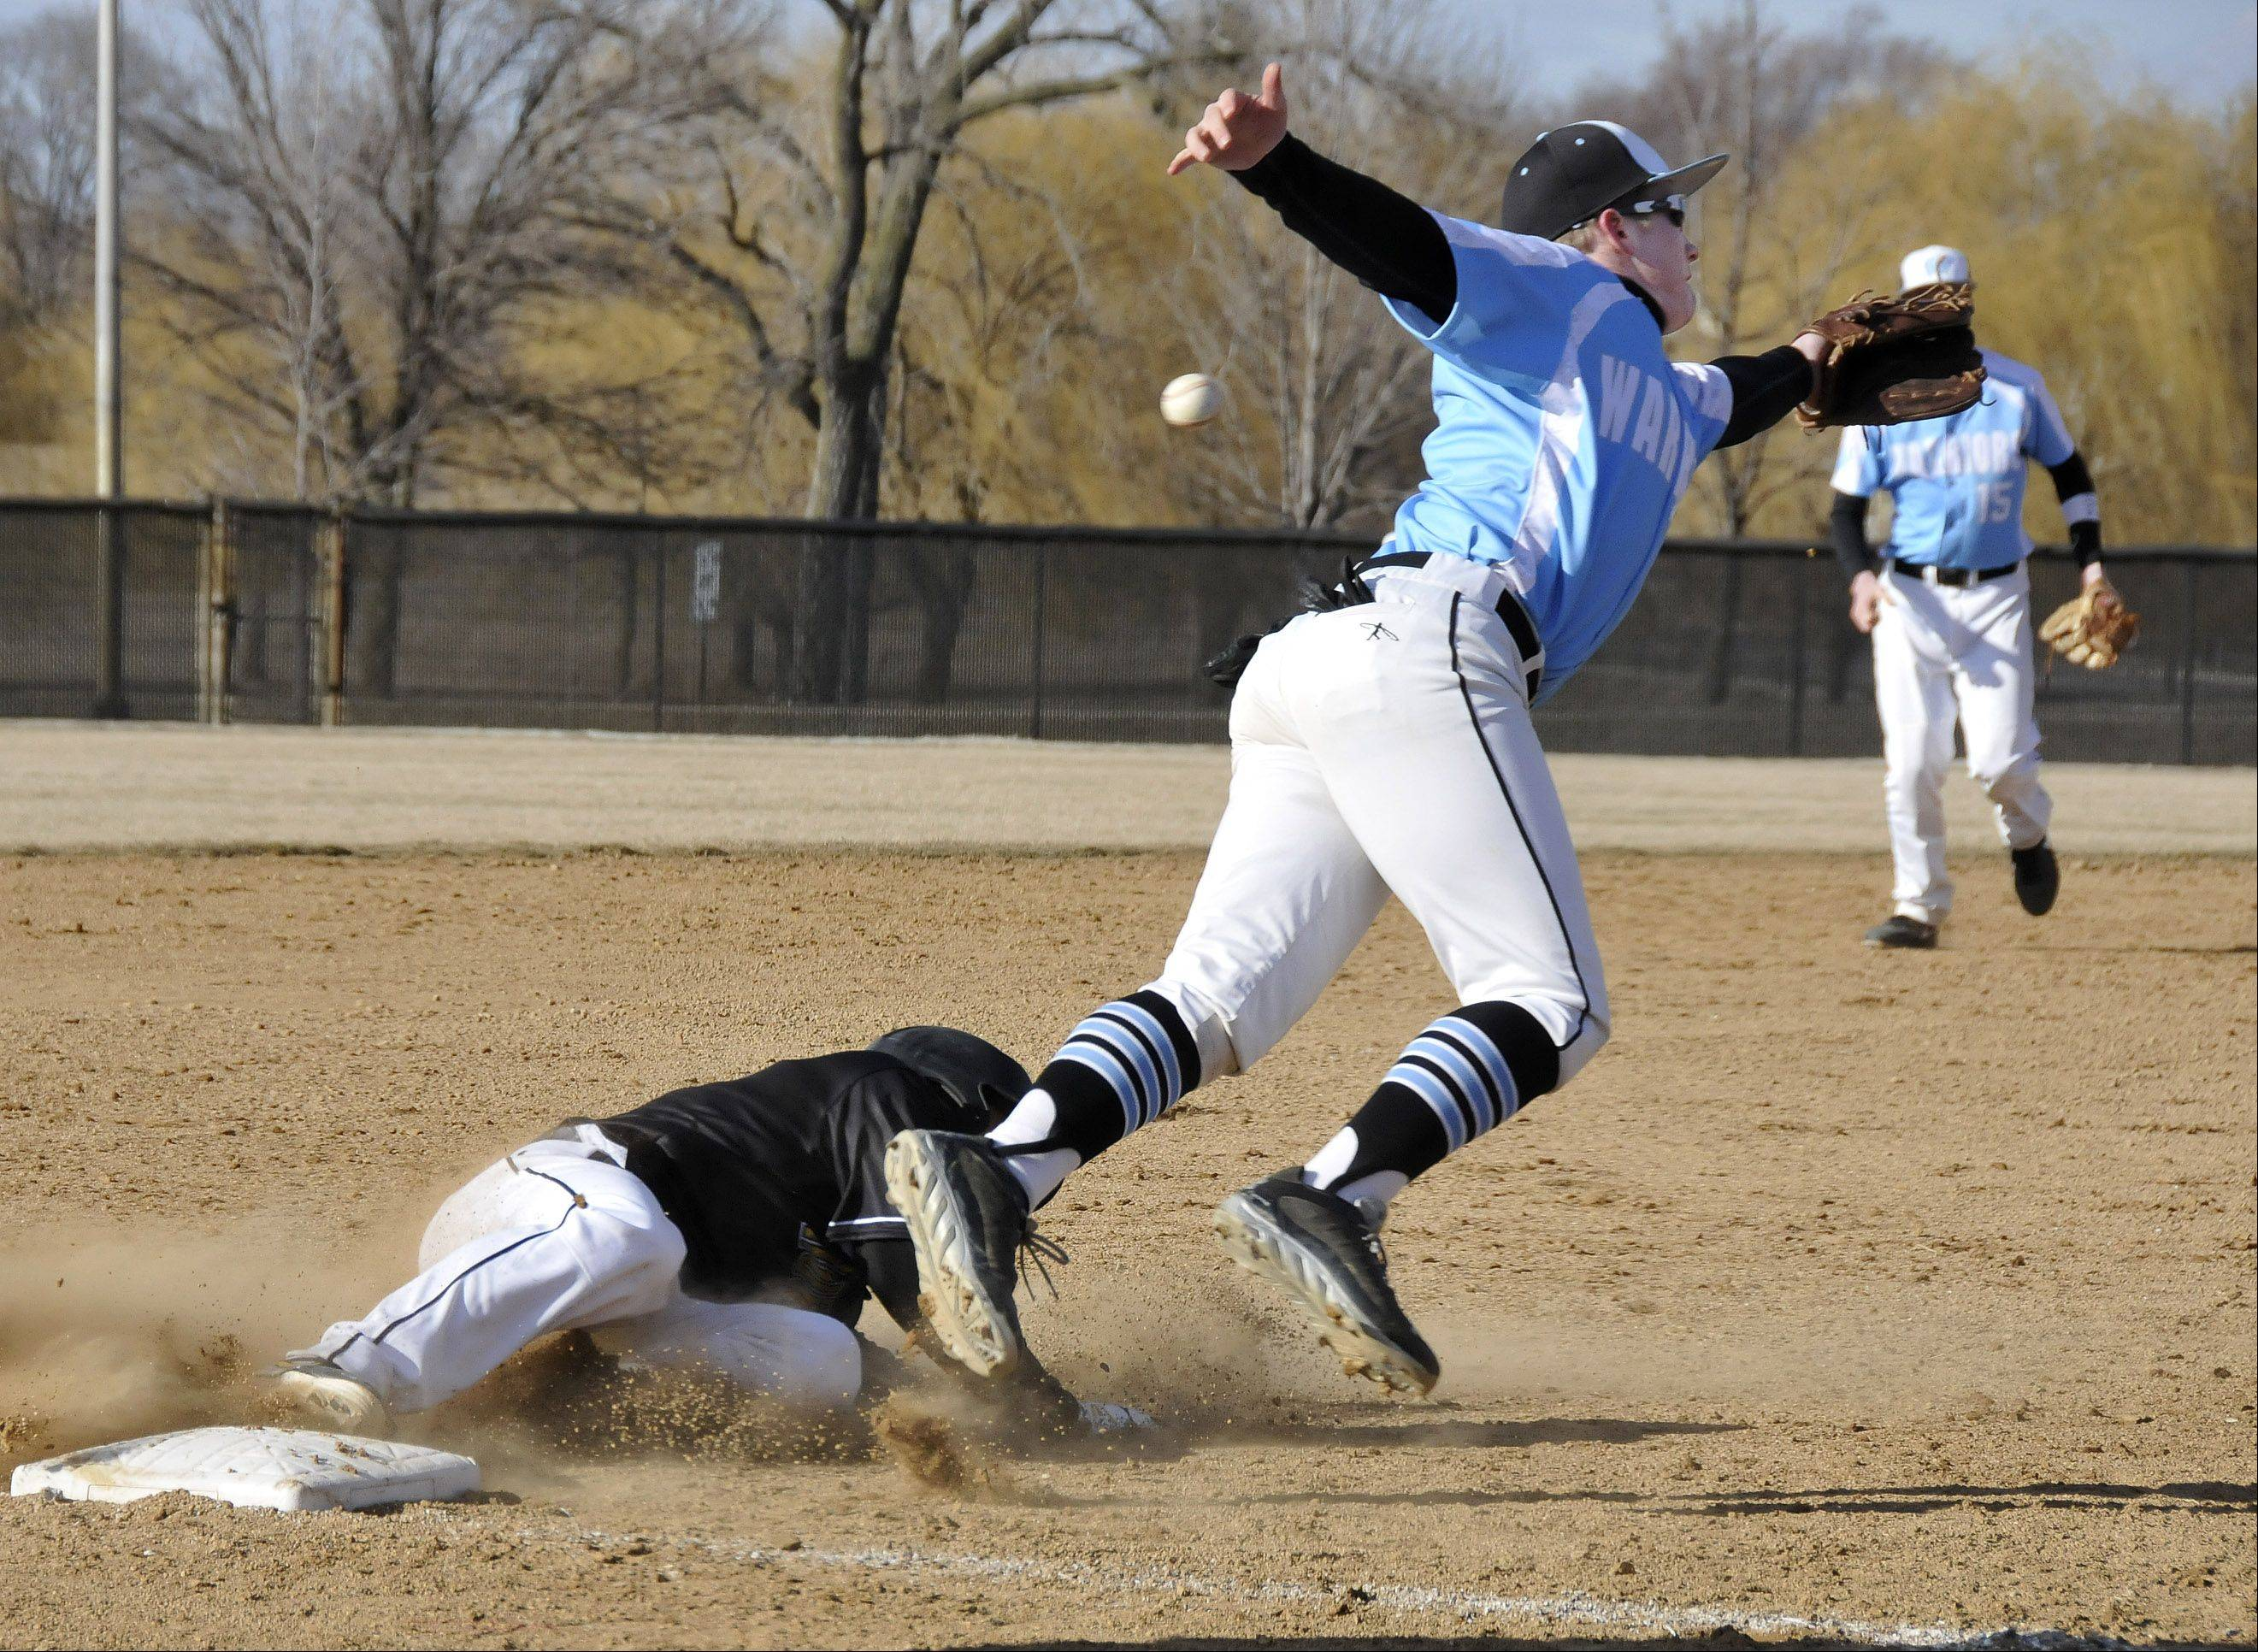 Errors snowball for Willowbrook